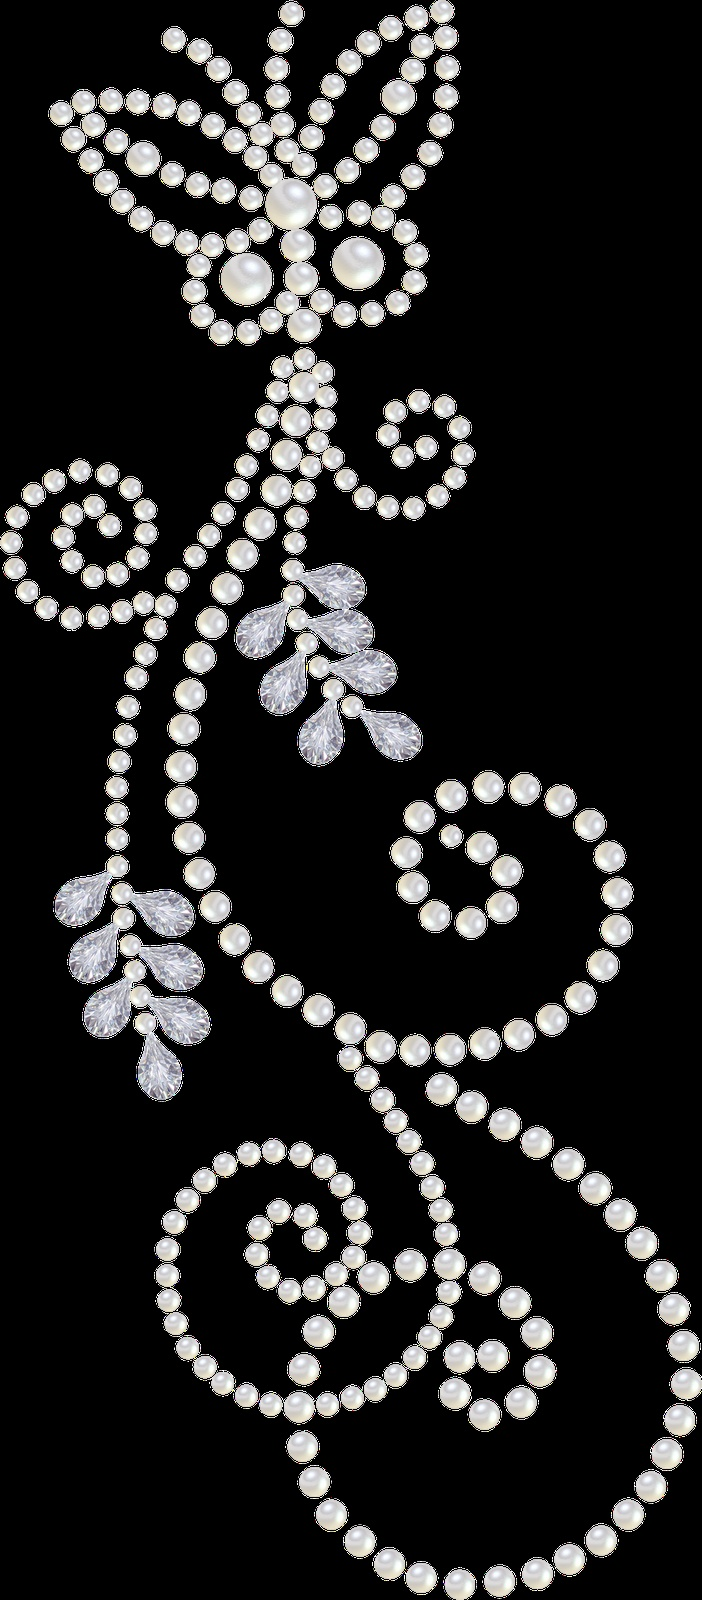 1000+ images about Anointed Pearls on Pinterest.